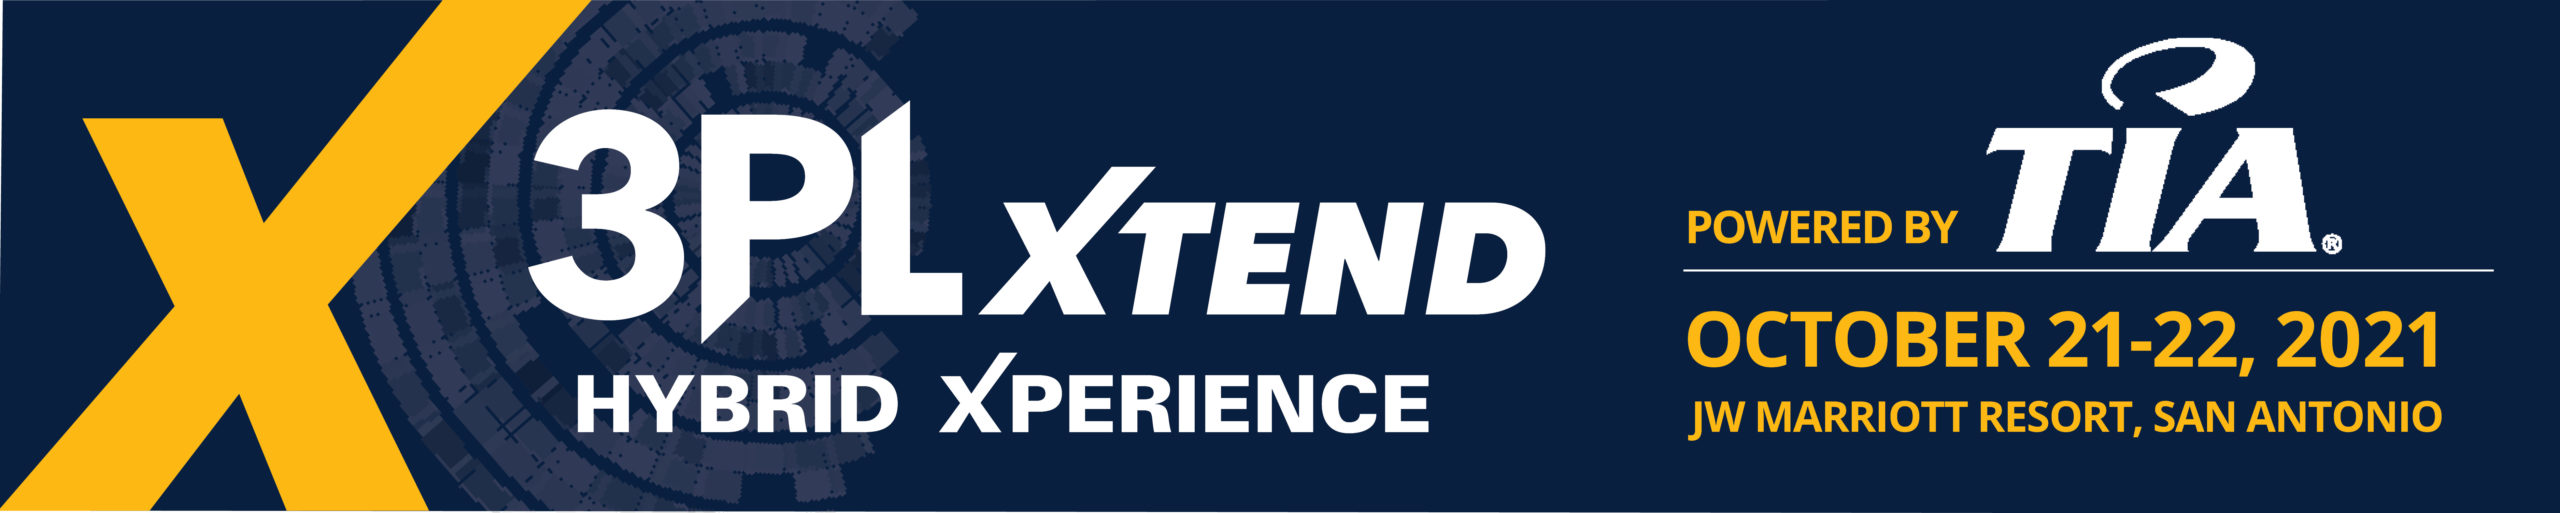 TIA 3PLXtend 2021 Web and Email Banners